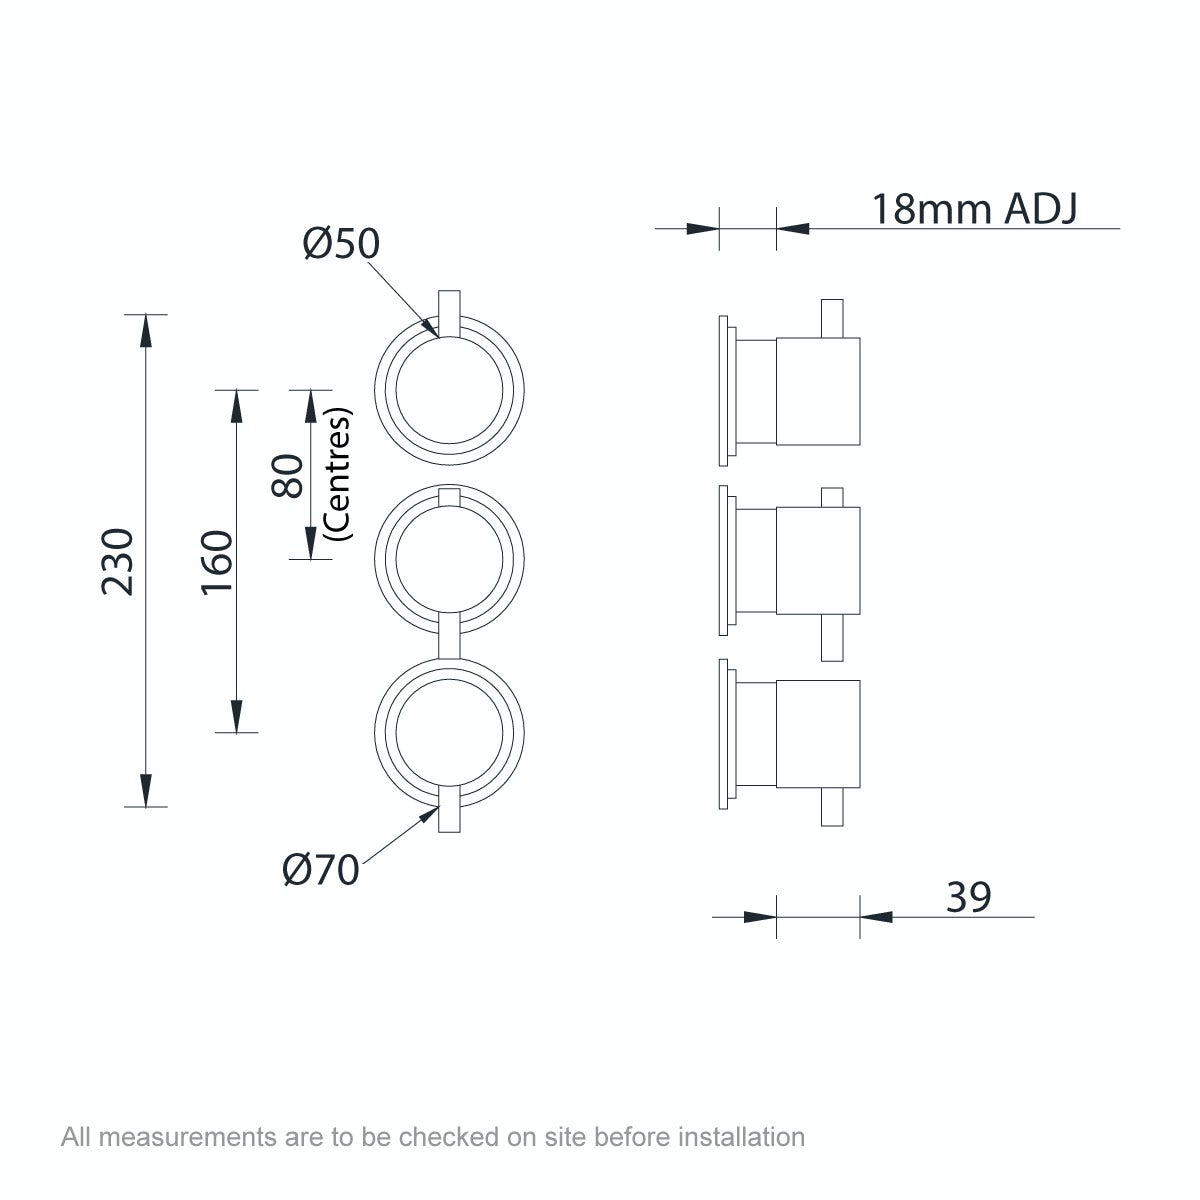 Dimensions for Mode Hardy round triple thermostatic shower valve with diverter